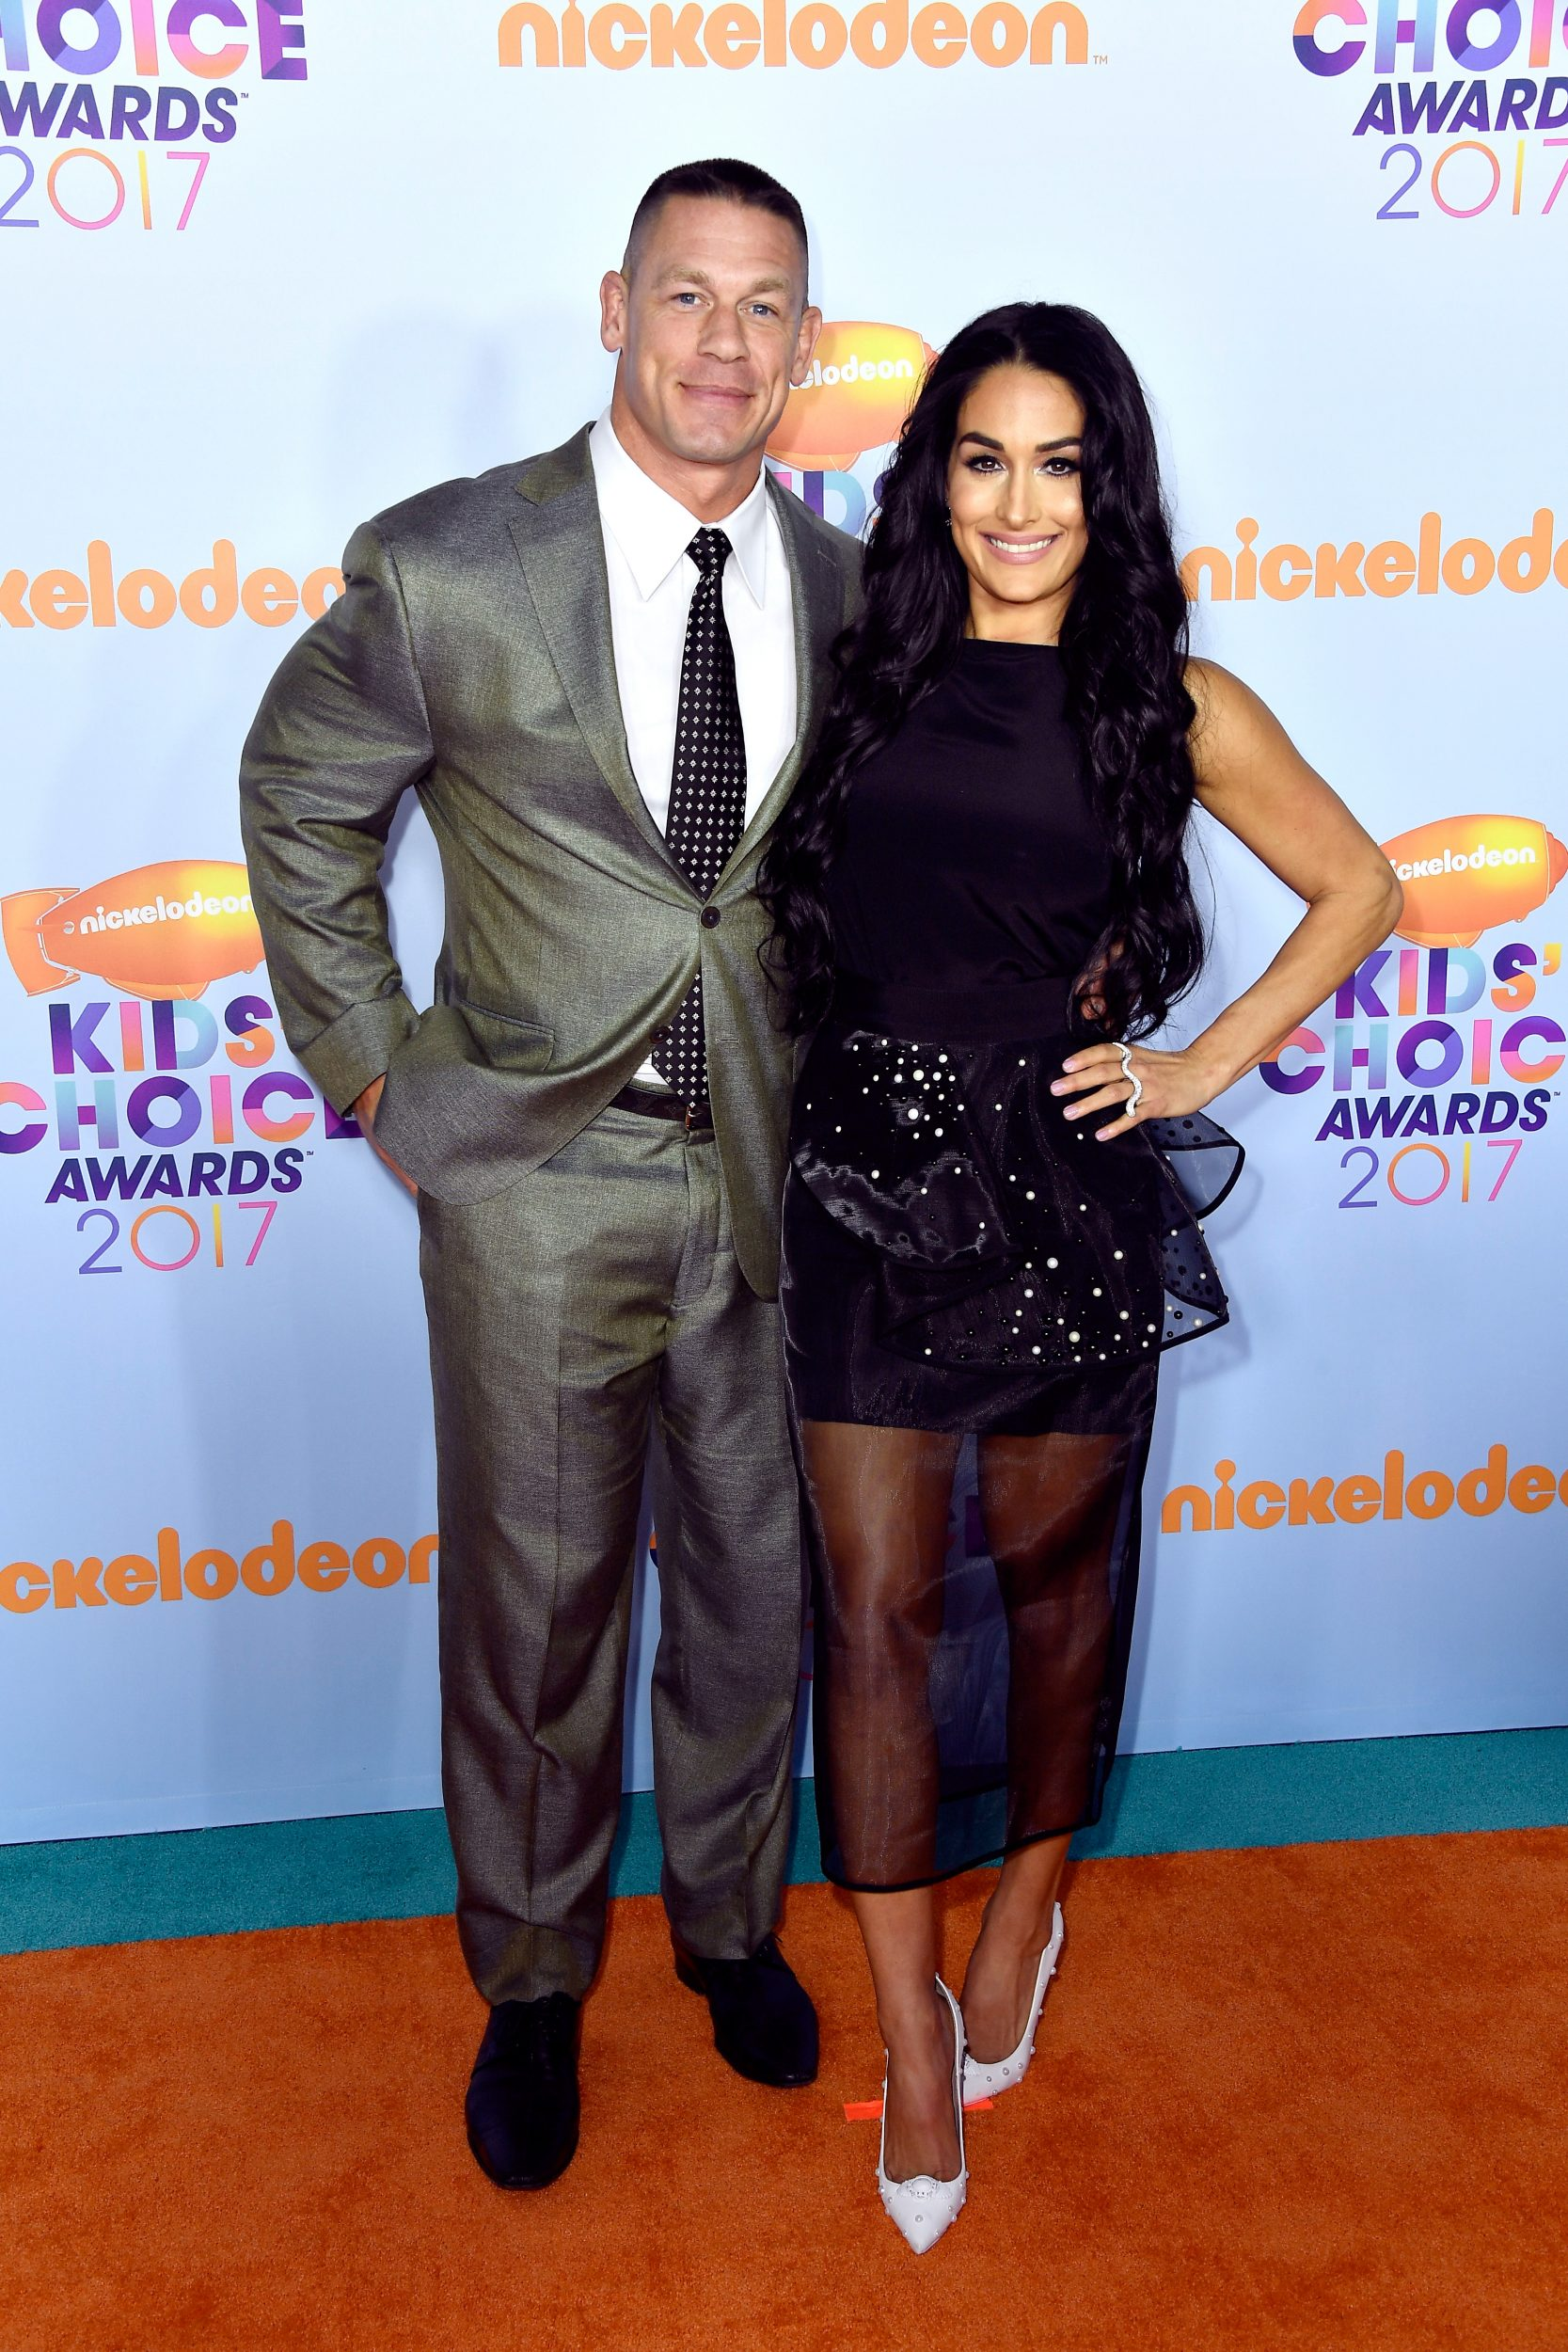 LOS ANGELES, CA - MARCH 11:  Host John Cena and Nikki Bella at Nickelodeon's 2017 Kids' Choice Awards at USC Galen Center on March 11, 2017 in Los Angeles, California.  (Photo by Frazer Harrison/Getty Images - Issued to Media by Nickelodeon)